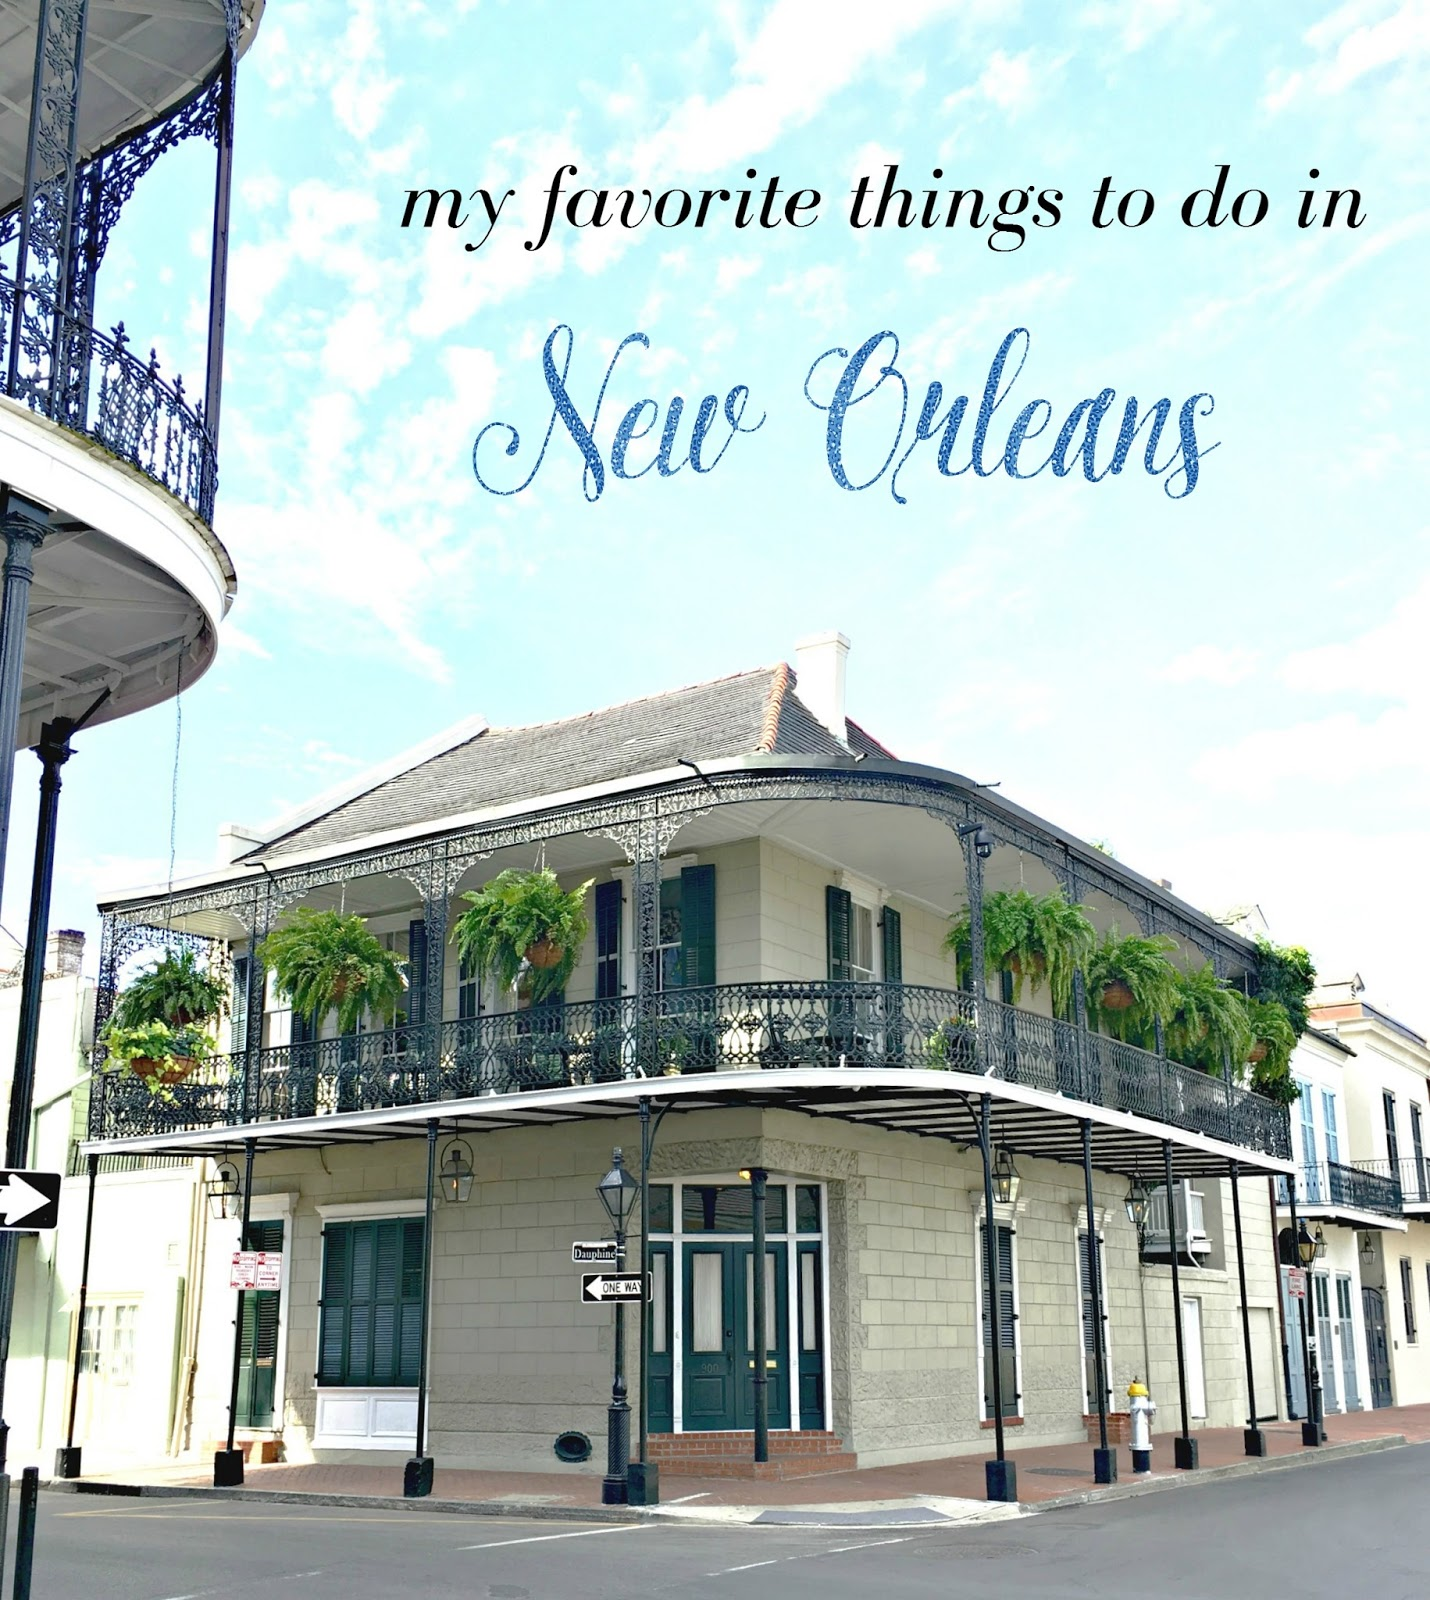 Heather giustino blog my favorite things to do in new orleans for Things to do in mew orleans